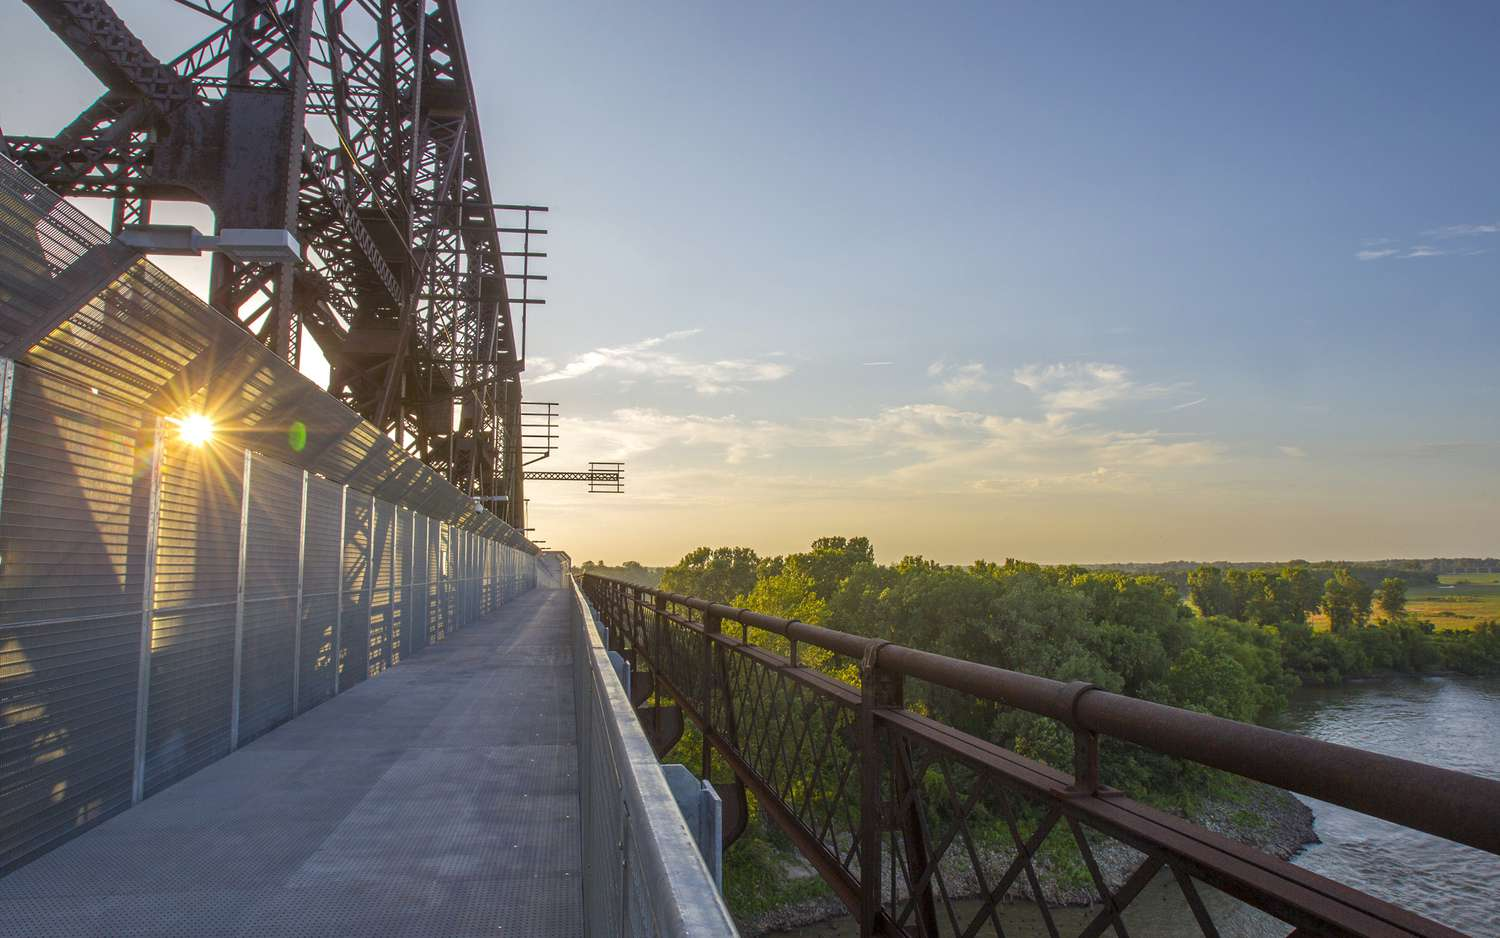 Big River Crossing, a rails-with-trails bridge project spanning the Mississippi River between Memphis, Tennessee, and West Memphis, Arkansas.